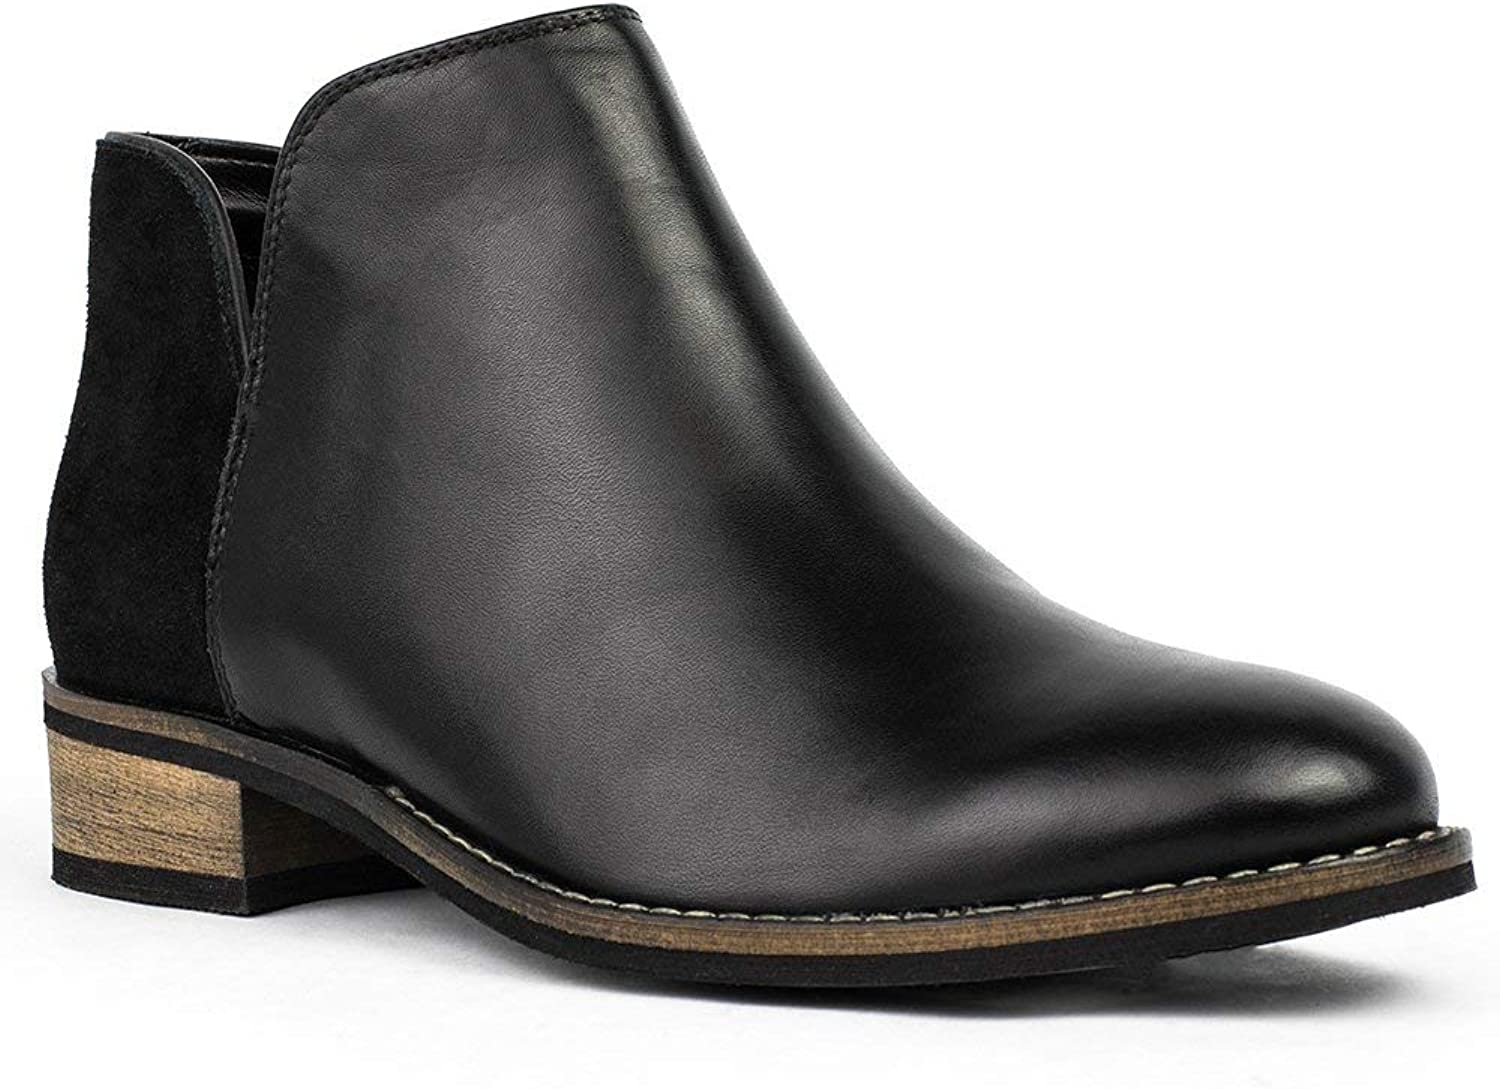 Crevo Womens Primpink Leather Closed Toe Ankle Fashion Boots